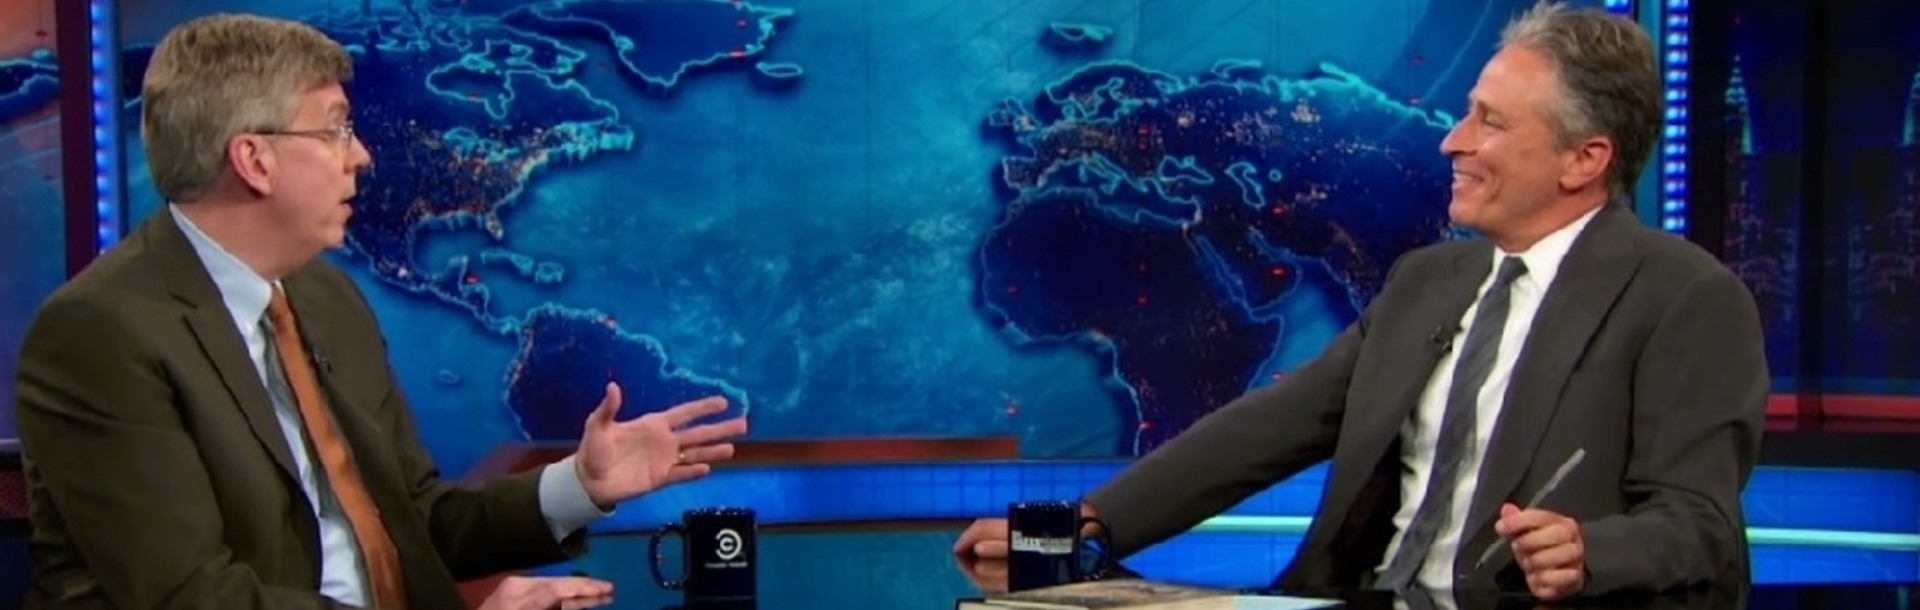 Bill Dedman talks with Jon Stewart on the Daily Show set